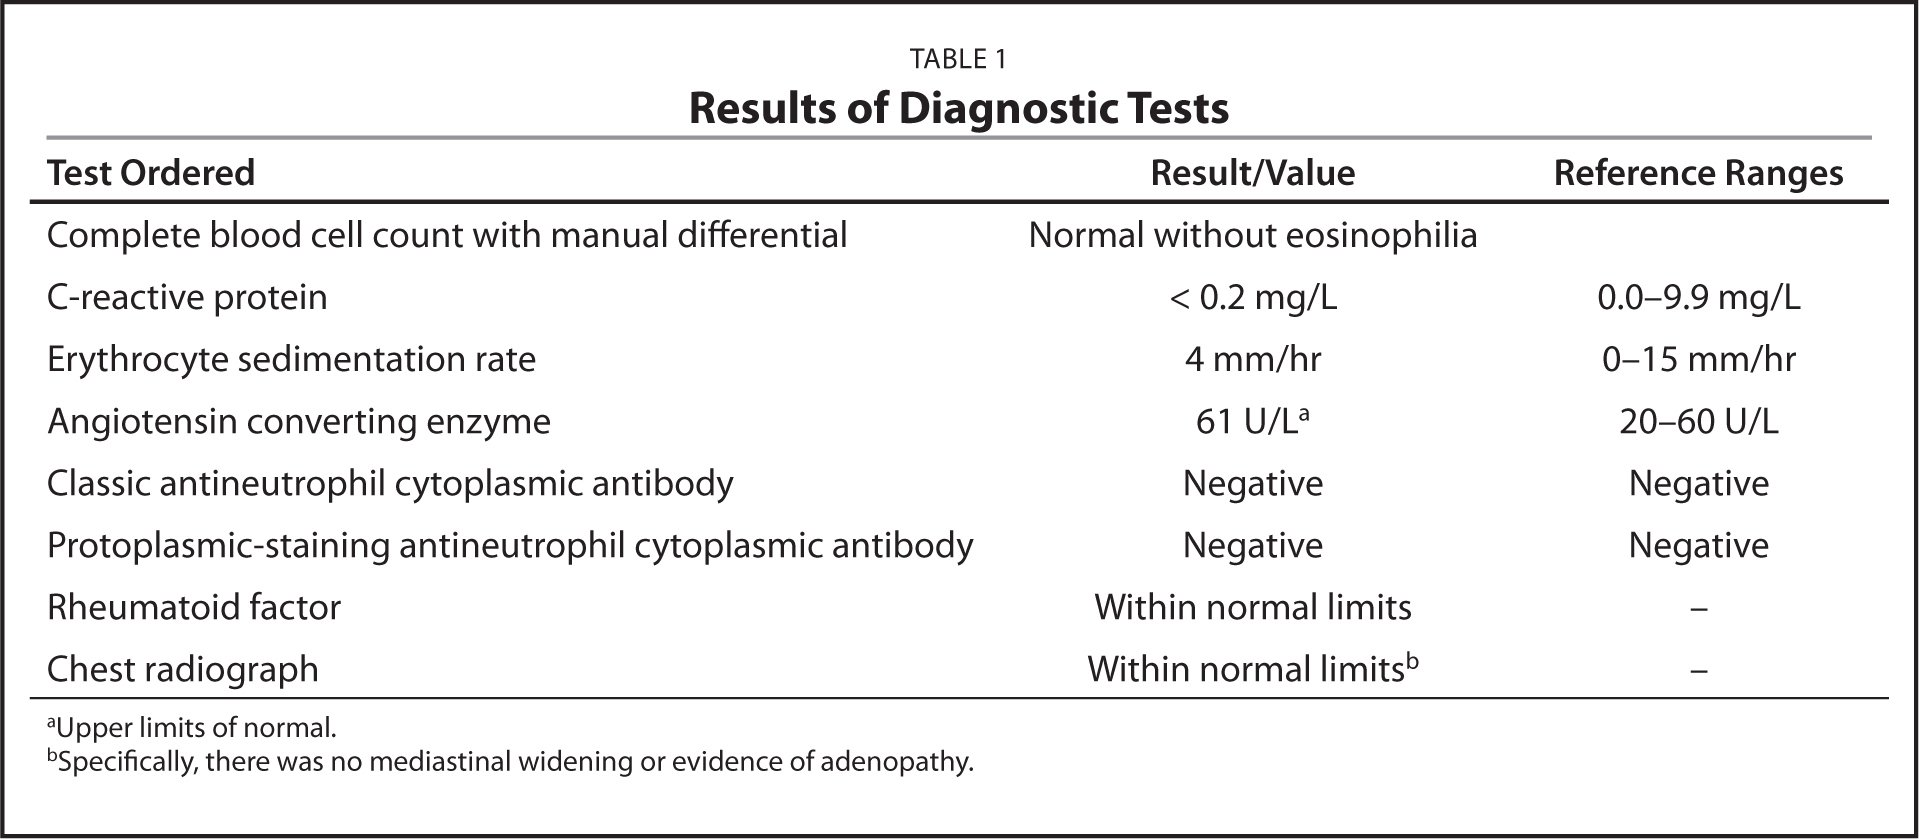 Results of Diagnostic Tests